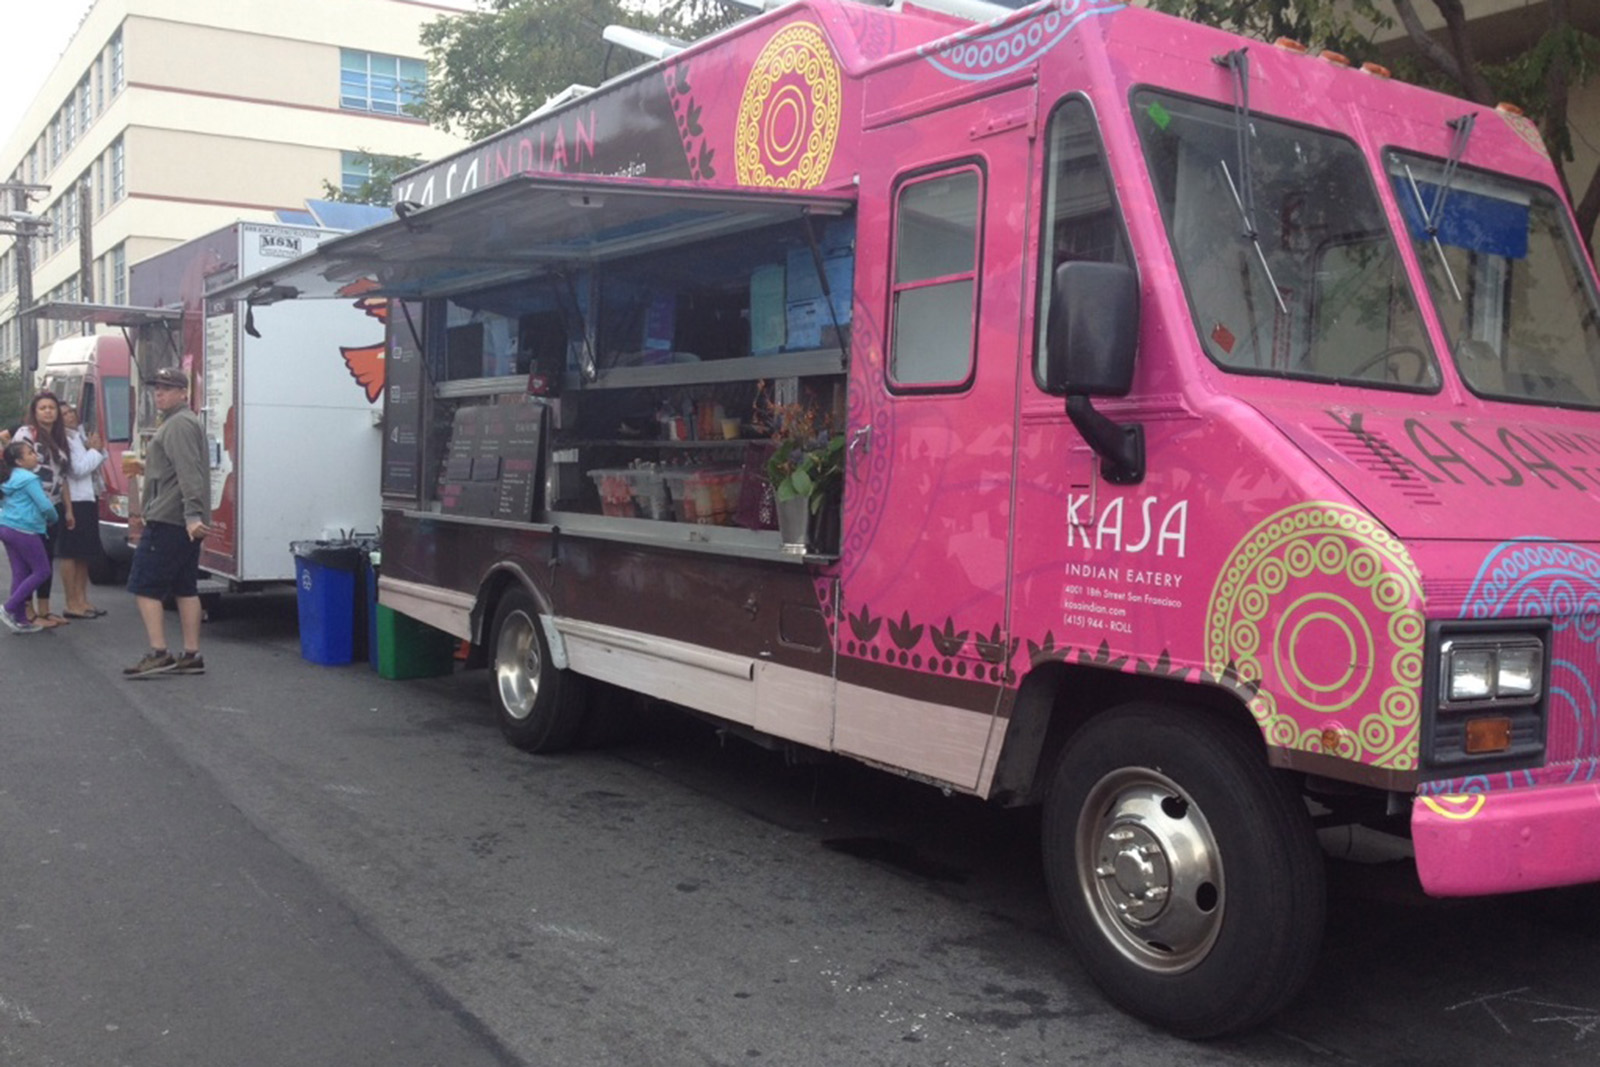 Food trucks: Are rolling restaurants the answer to city-mandated earthquake retrofits?